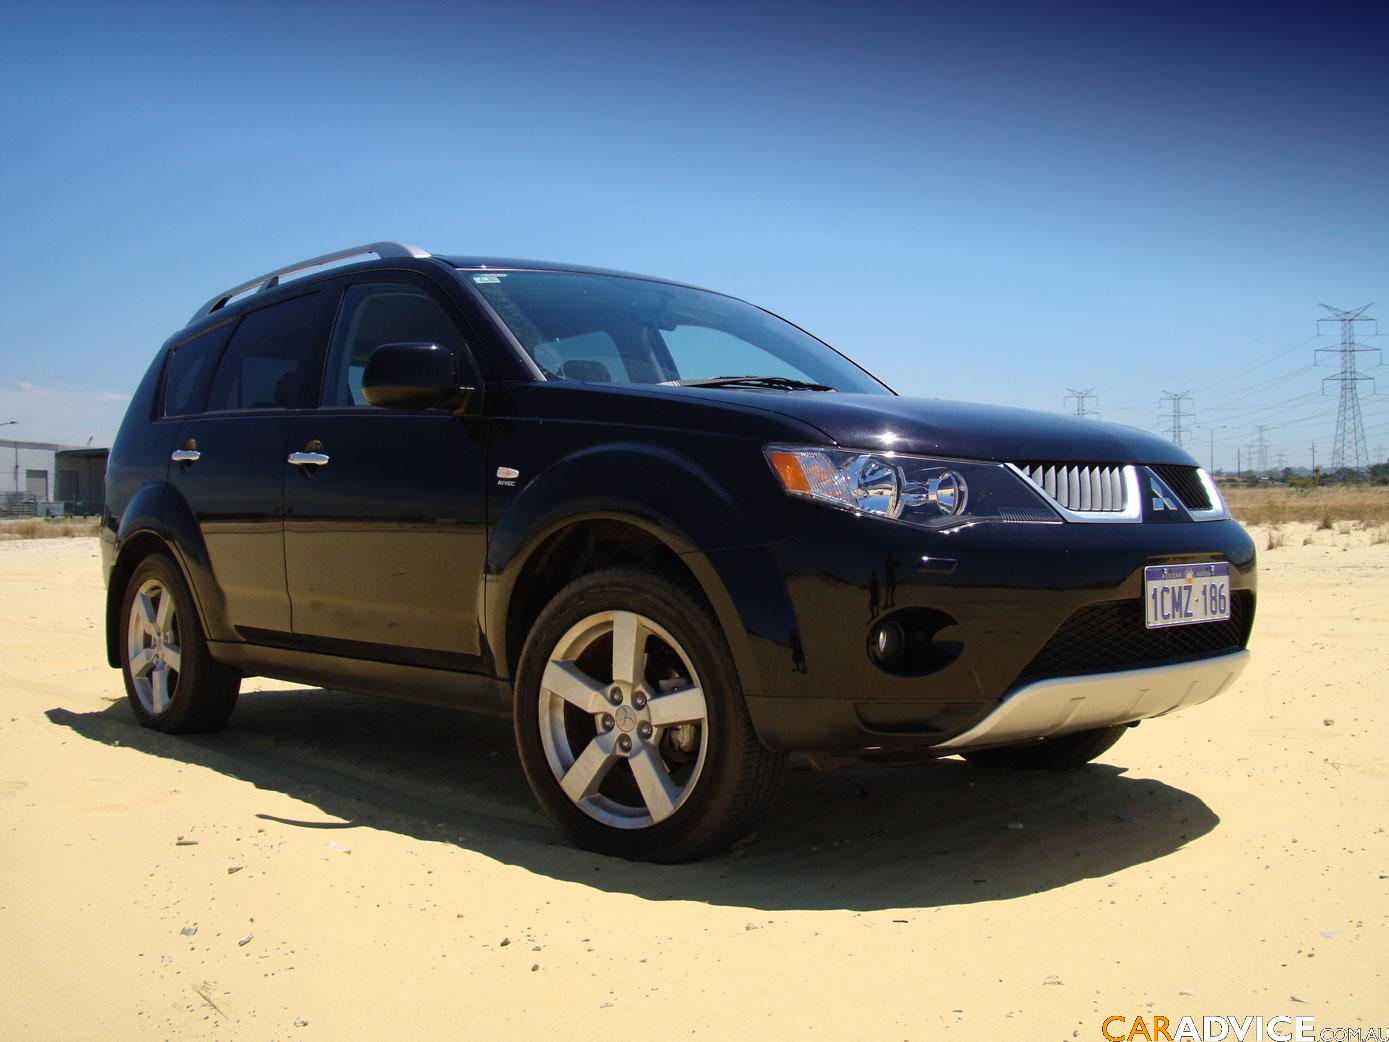 2007 Mitsubishi Outlander Vrx Review Caradvice